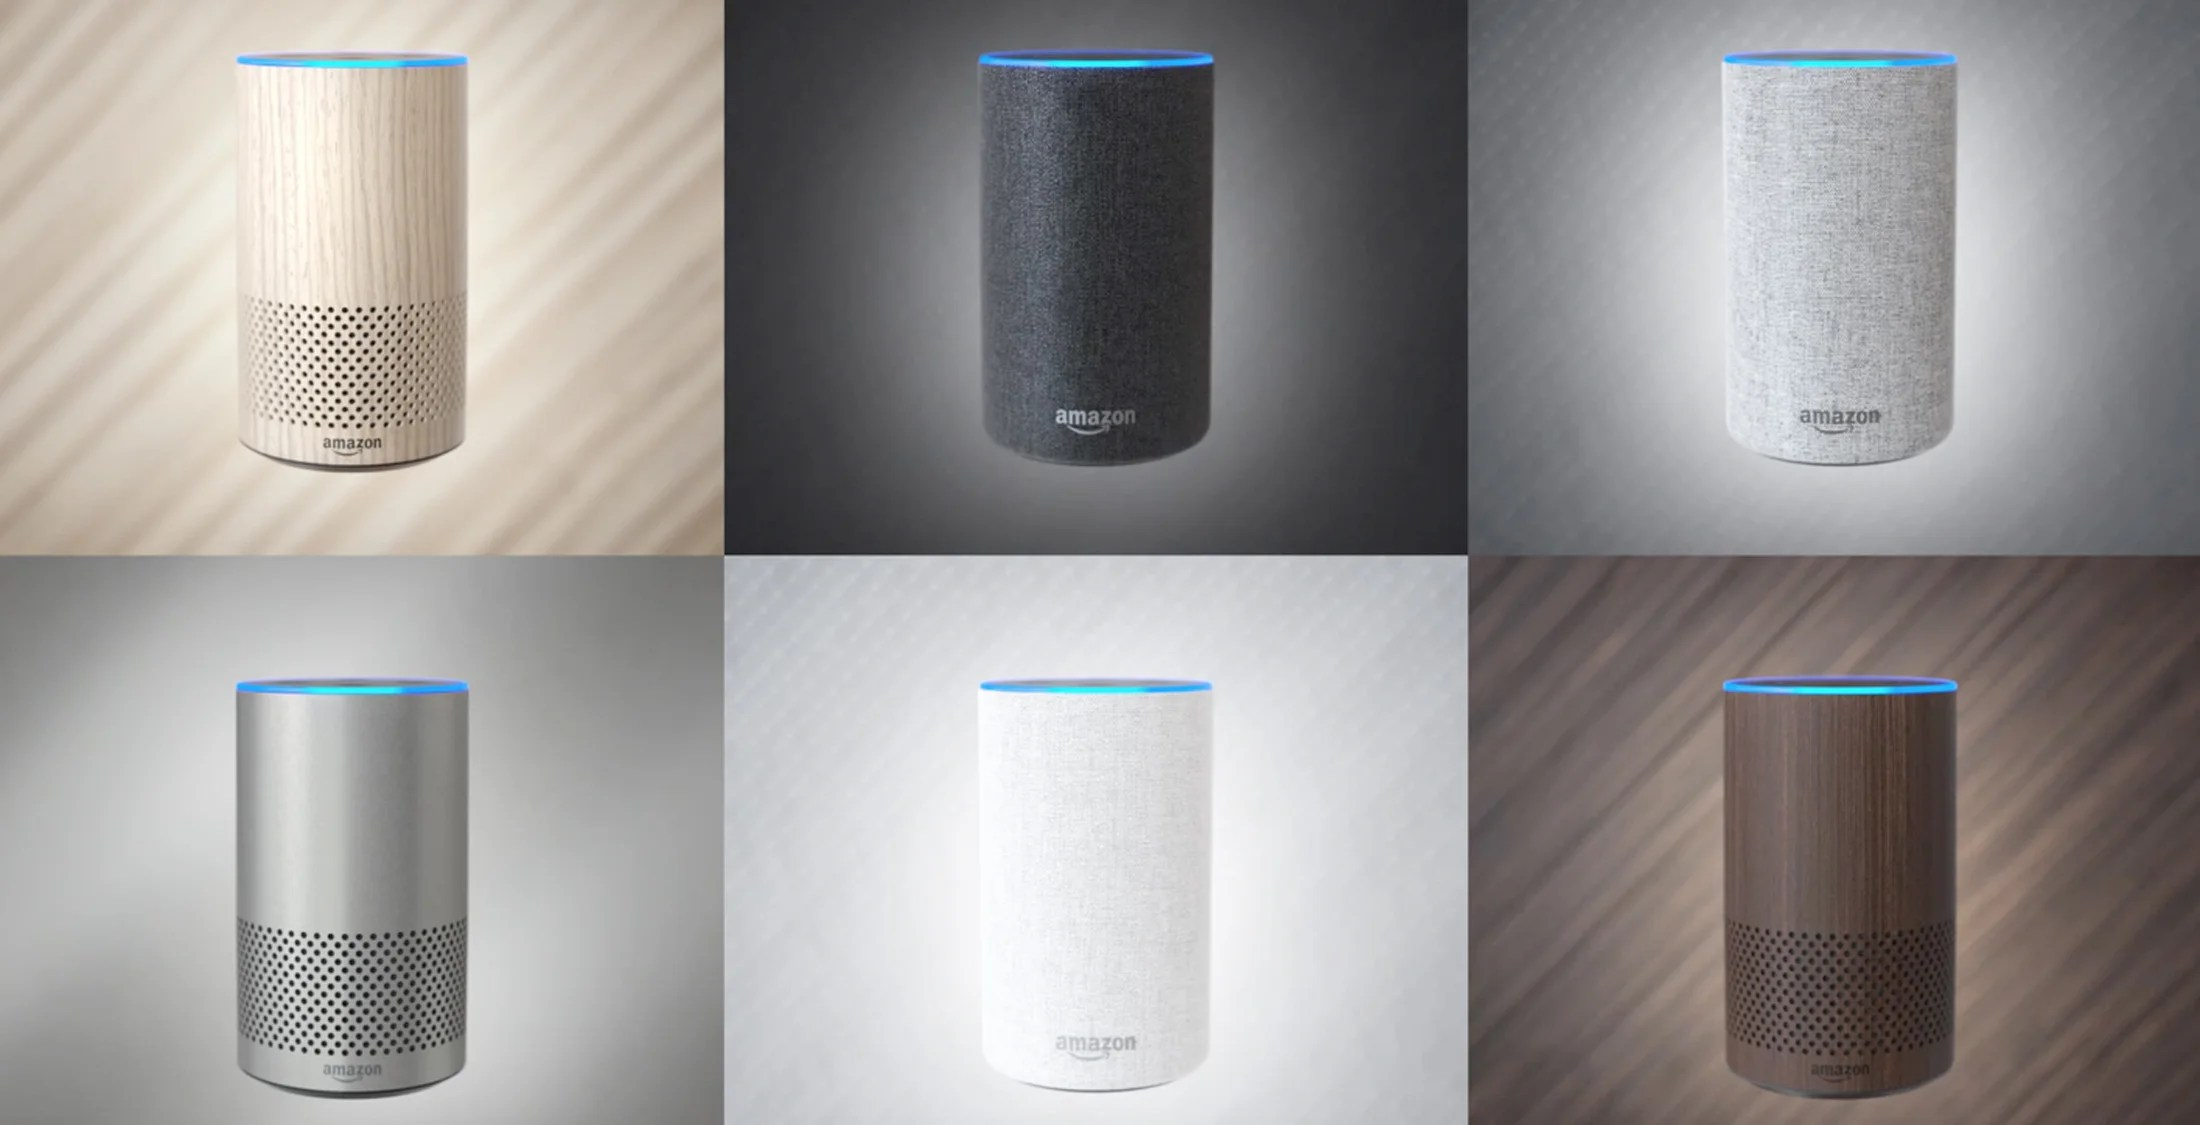 Sonos Sound System Amazon Echo Plus Vs Echo 2: What's The Difference